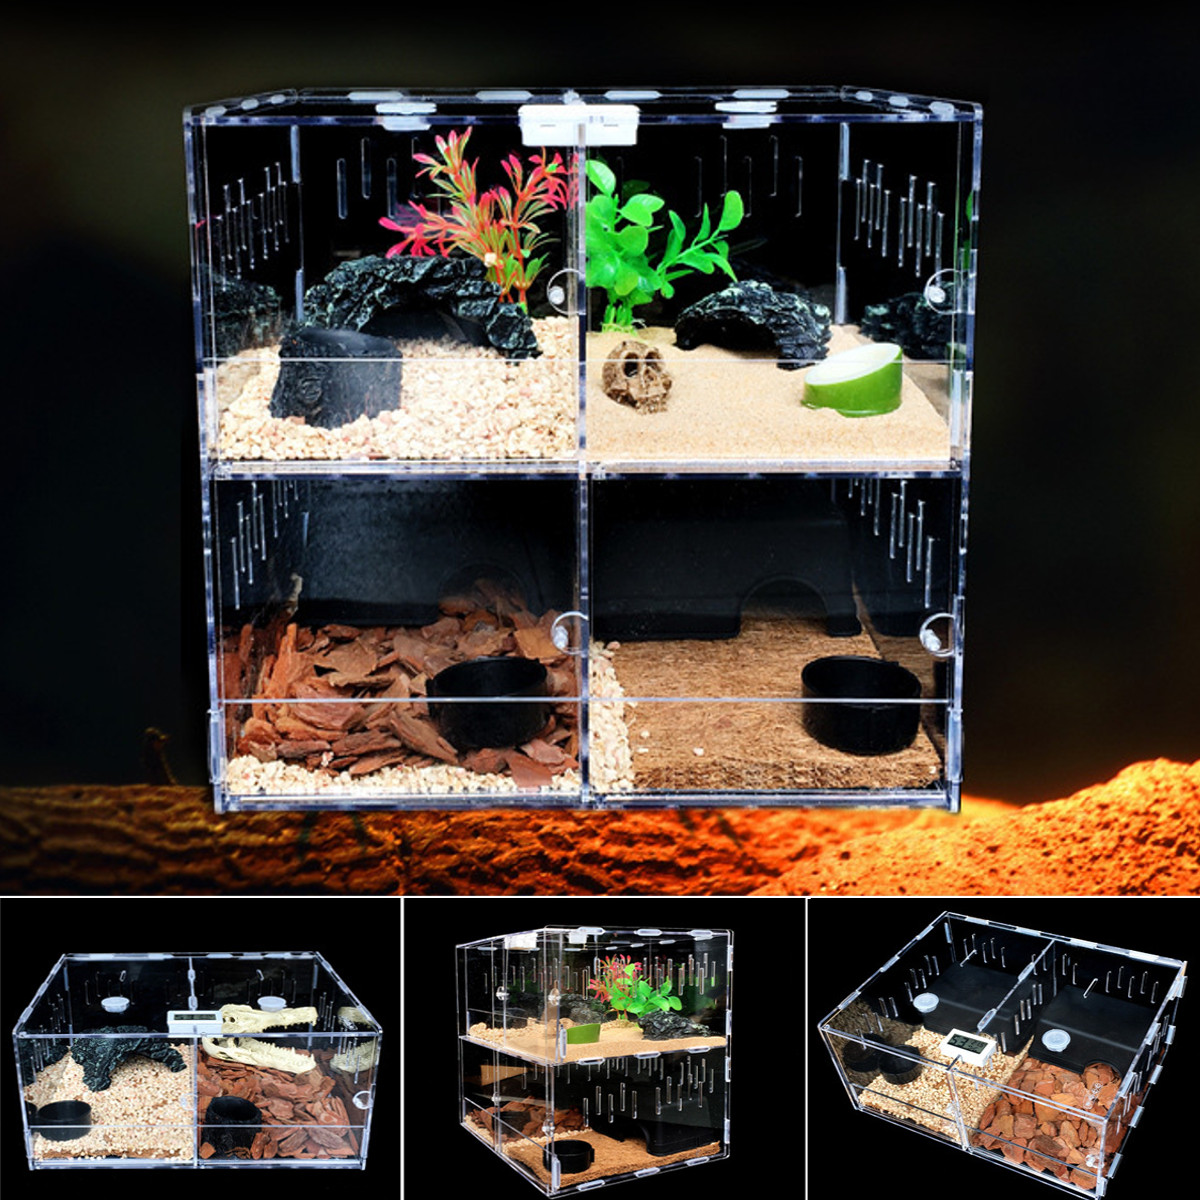 Reptile Acrylic Turtle Pet Insect Spider Lizard Breeding Tank Kit Clear House,Temperature & Hygrometer & Breathable Holes Designed